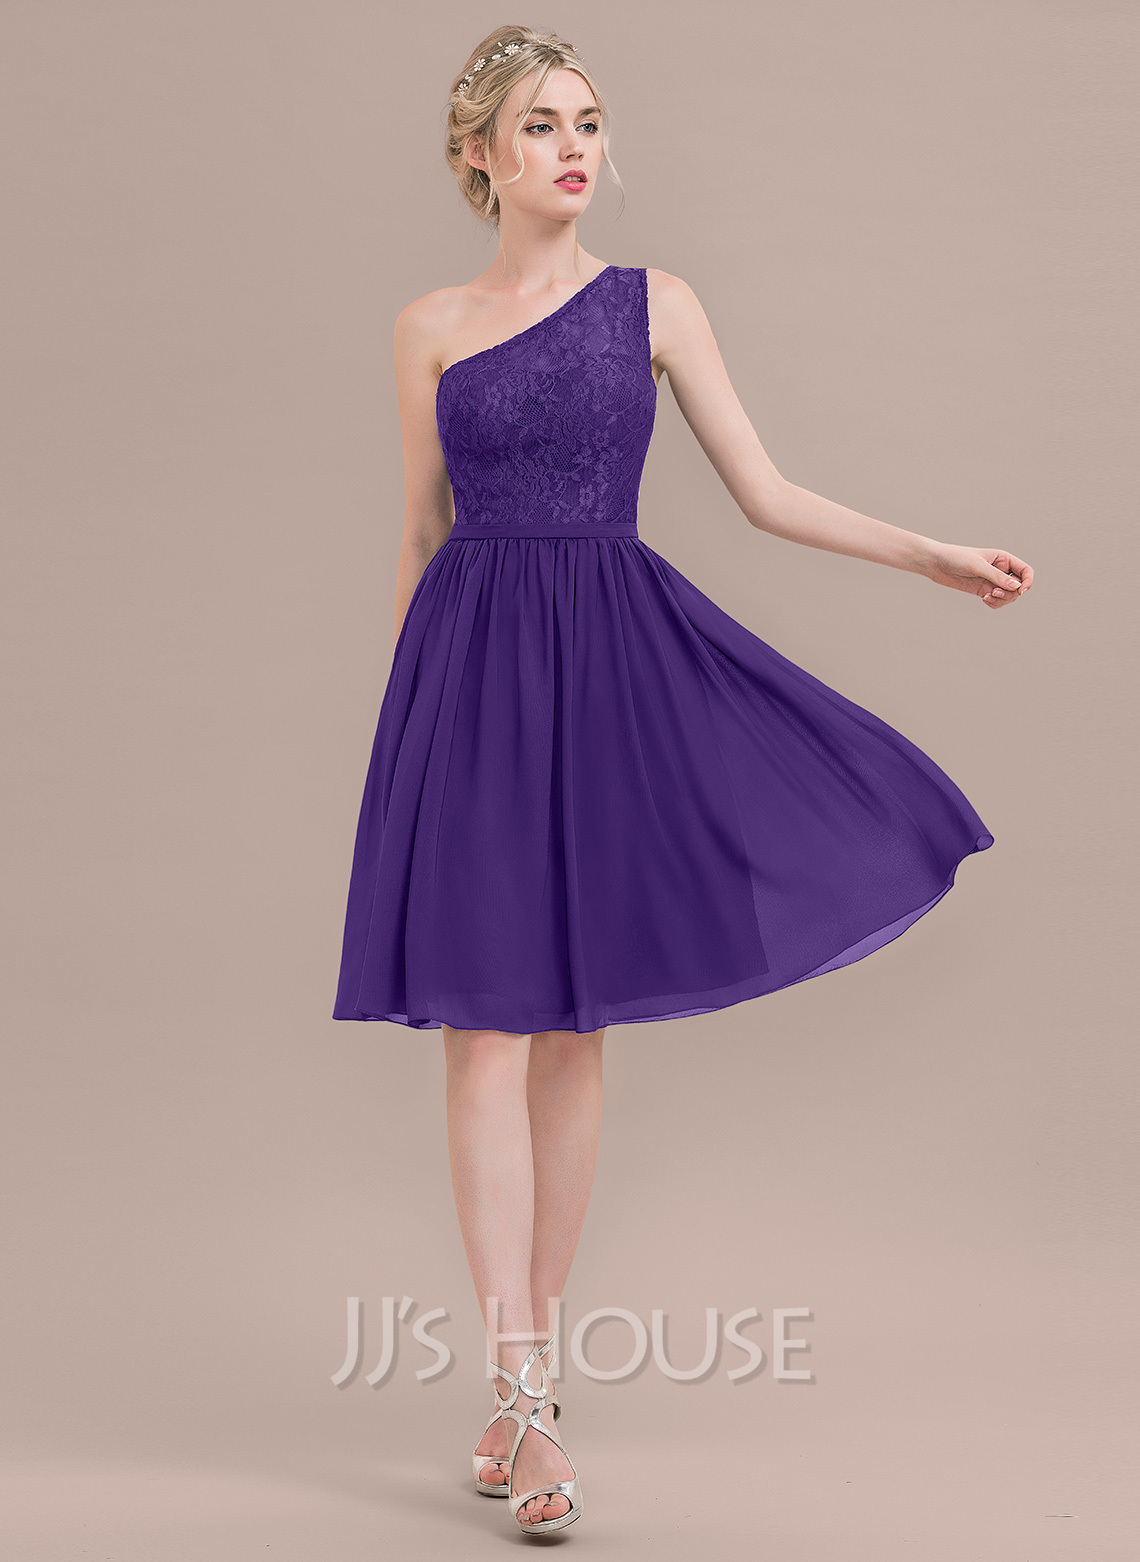 A-Line/Princess One-Shoulder Knee-Length Chiffon Lace Bridesmaid Dress